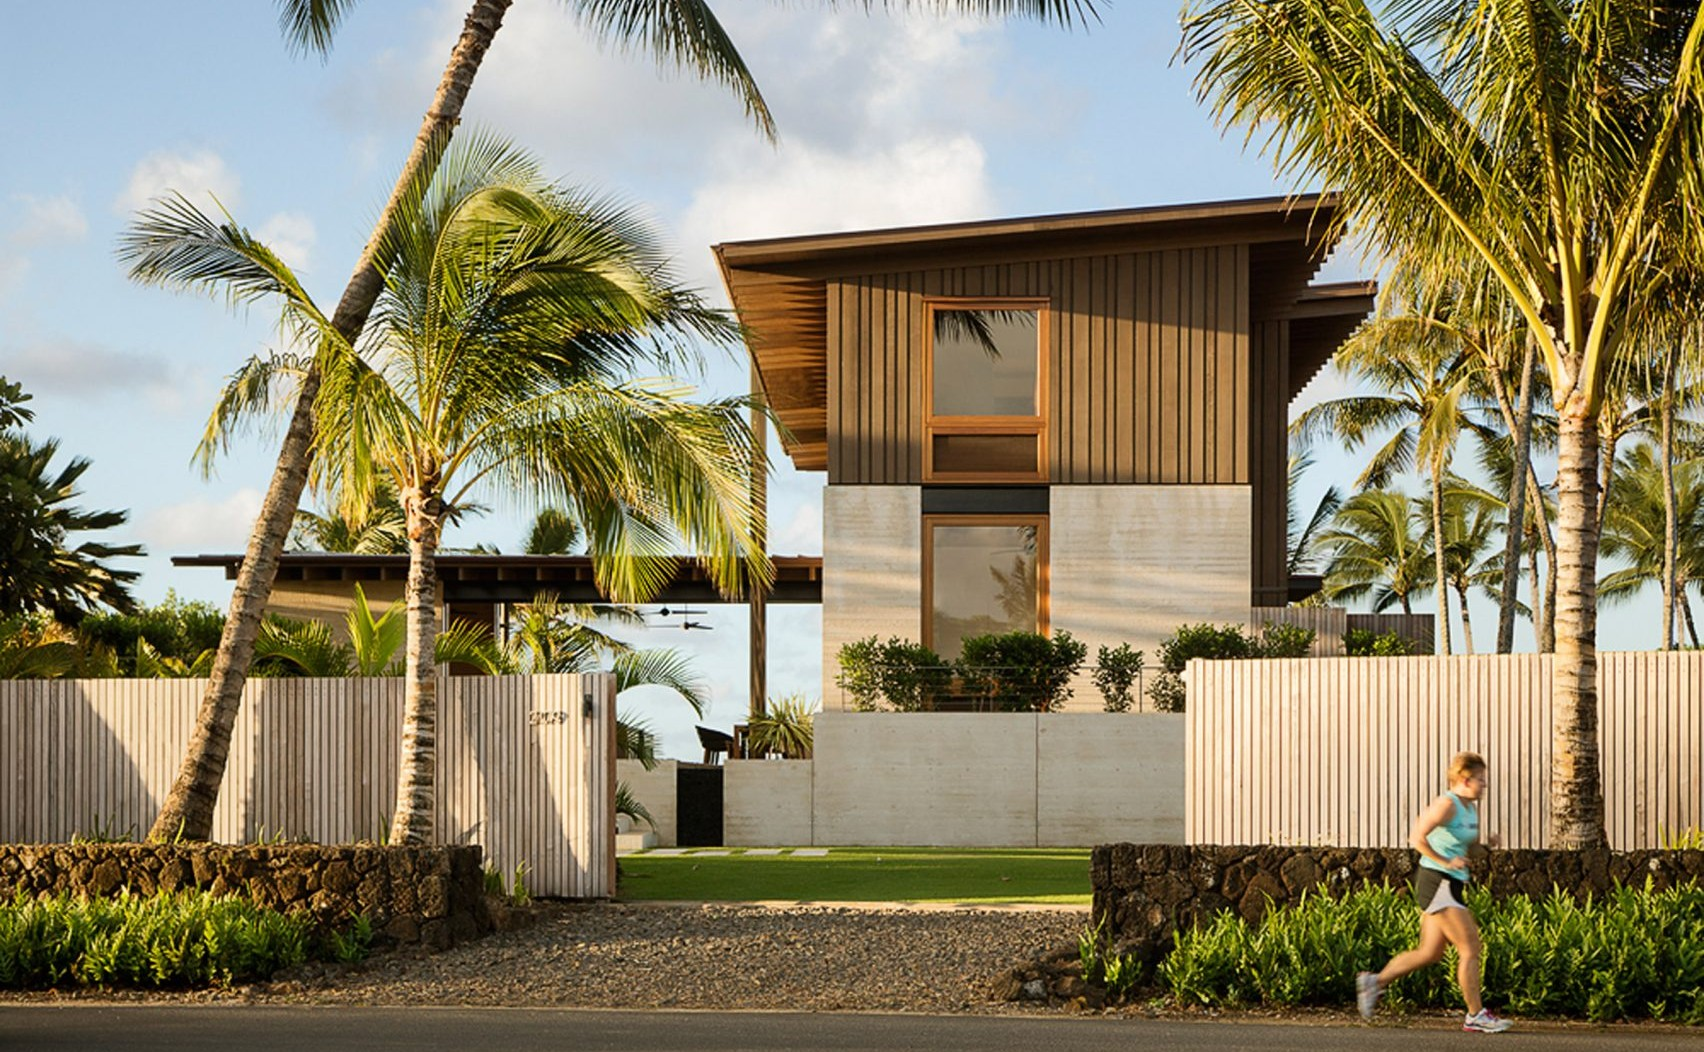 hale-nukumoi-housa-walker-warner-architects-residential-hawaii-usa_dezeen_2364_col_32-1704x1172